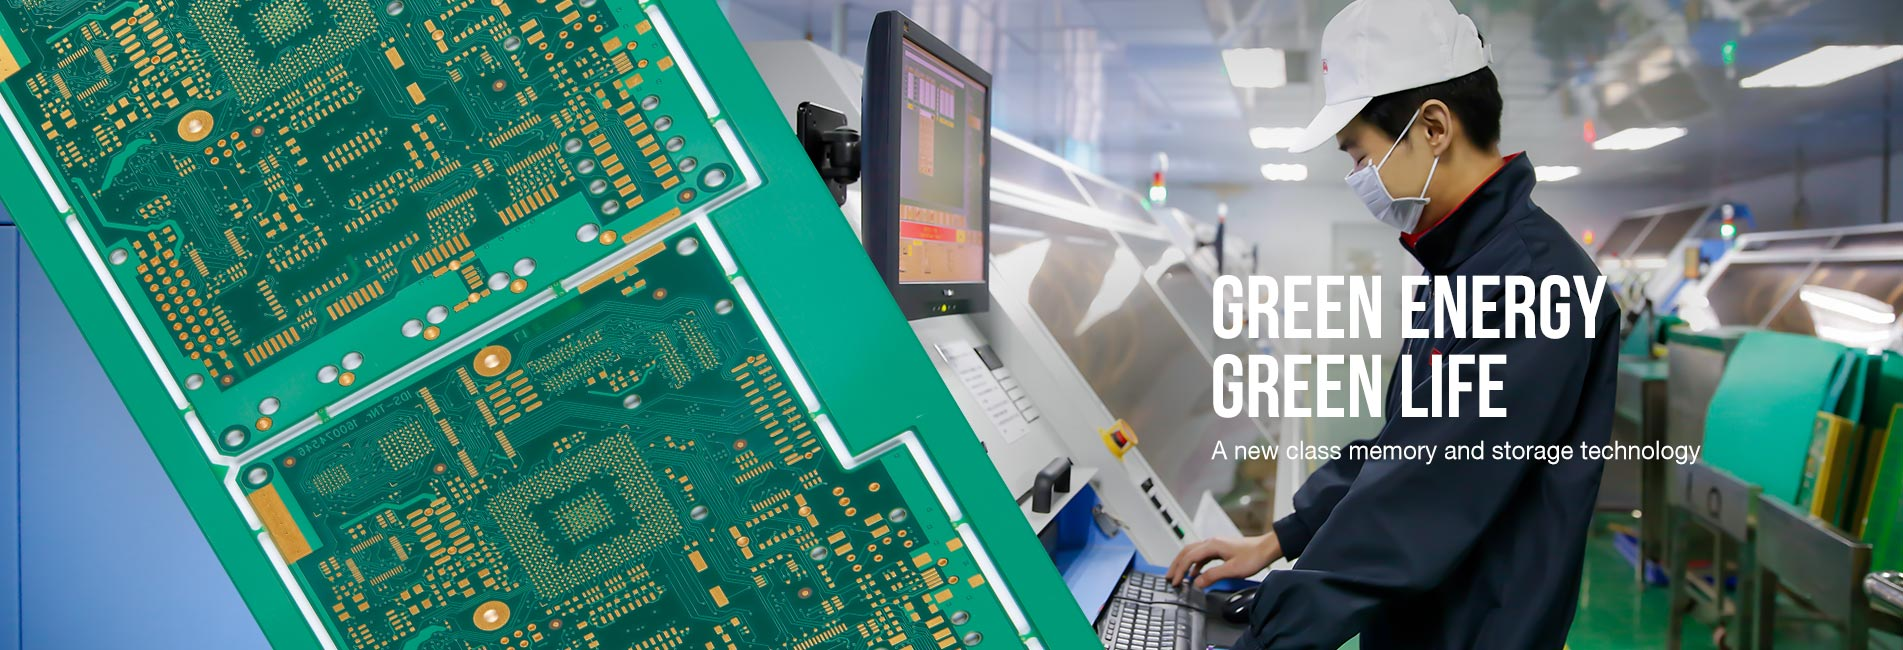 Printed Circuit Board Manufacturer Pcb Assembly Everpcb Pcba China Electronic And Digital Previousnext